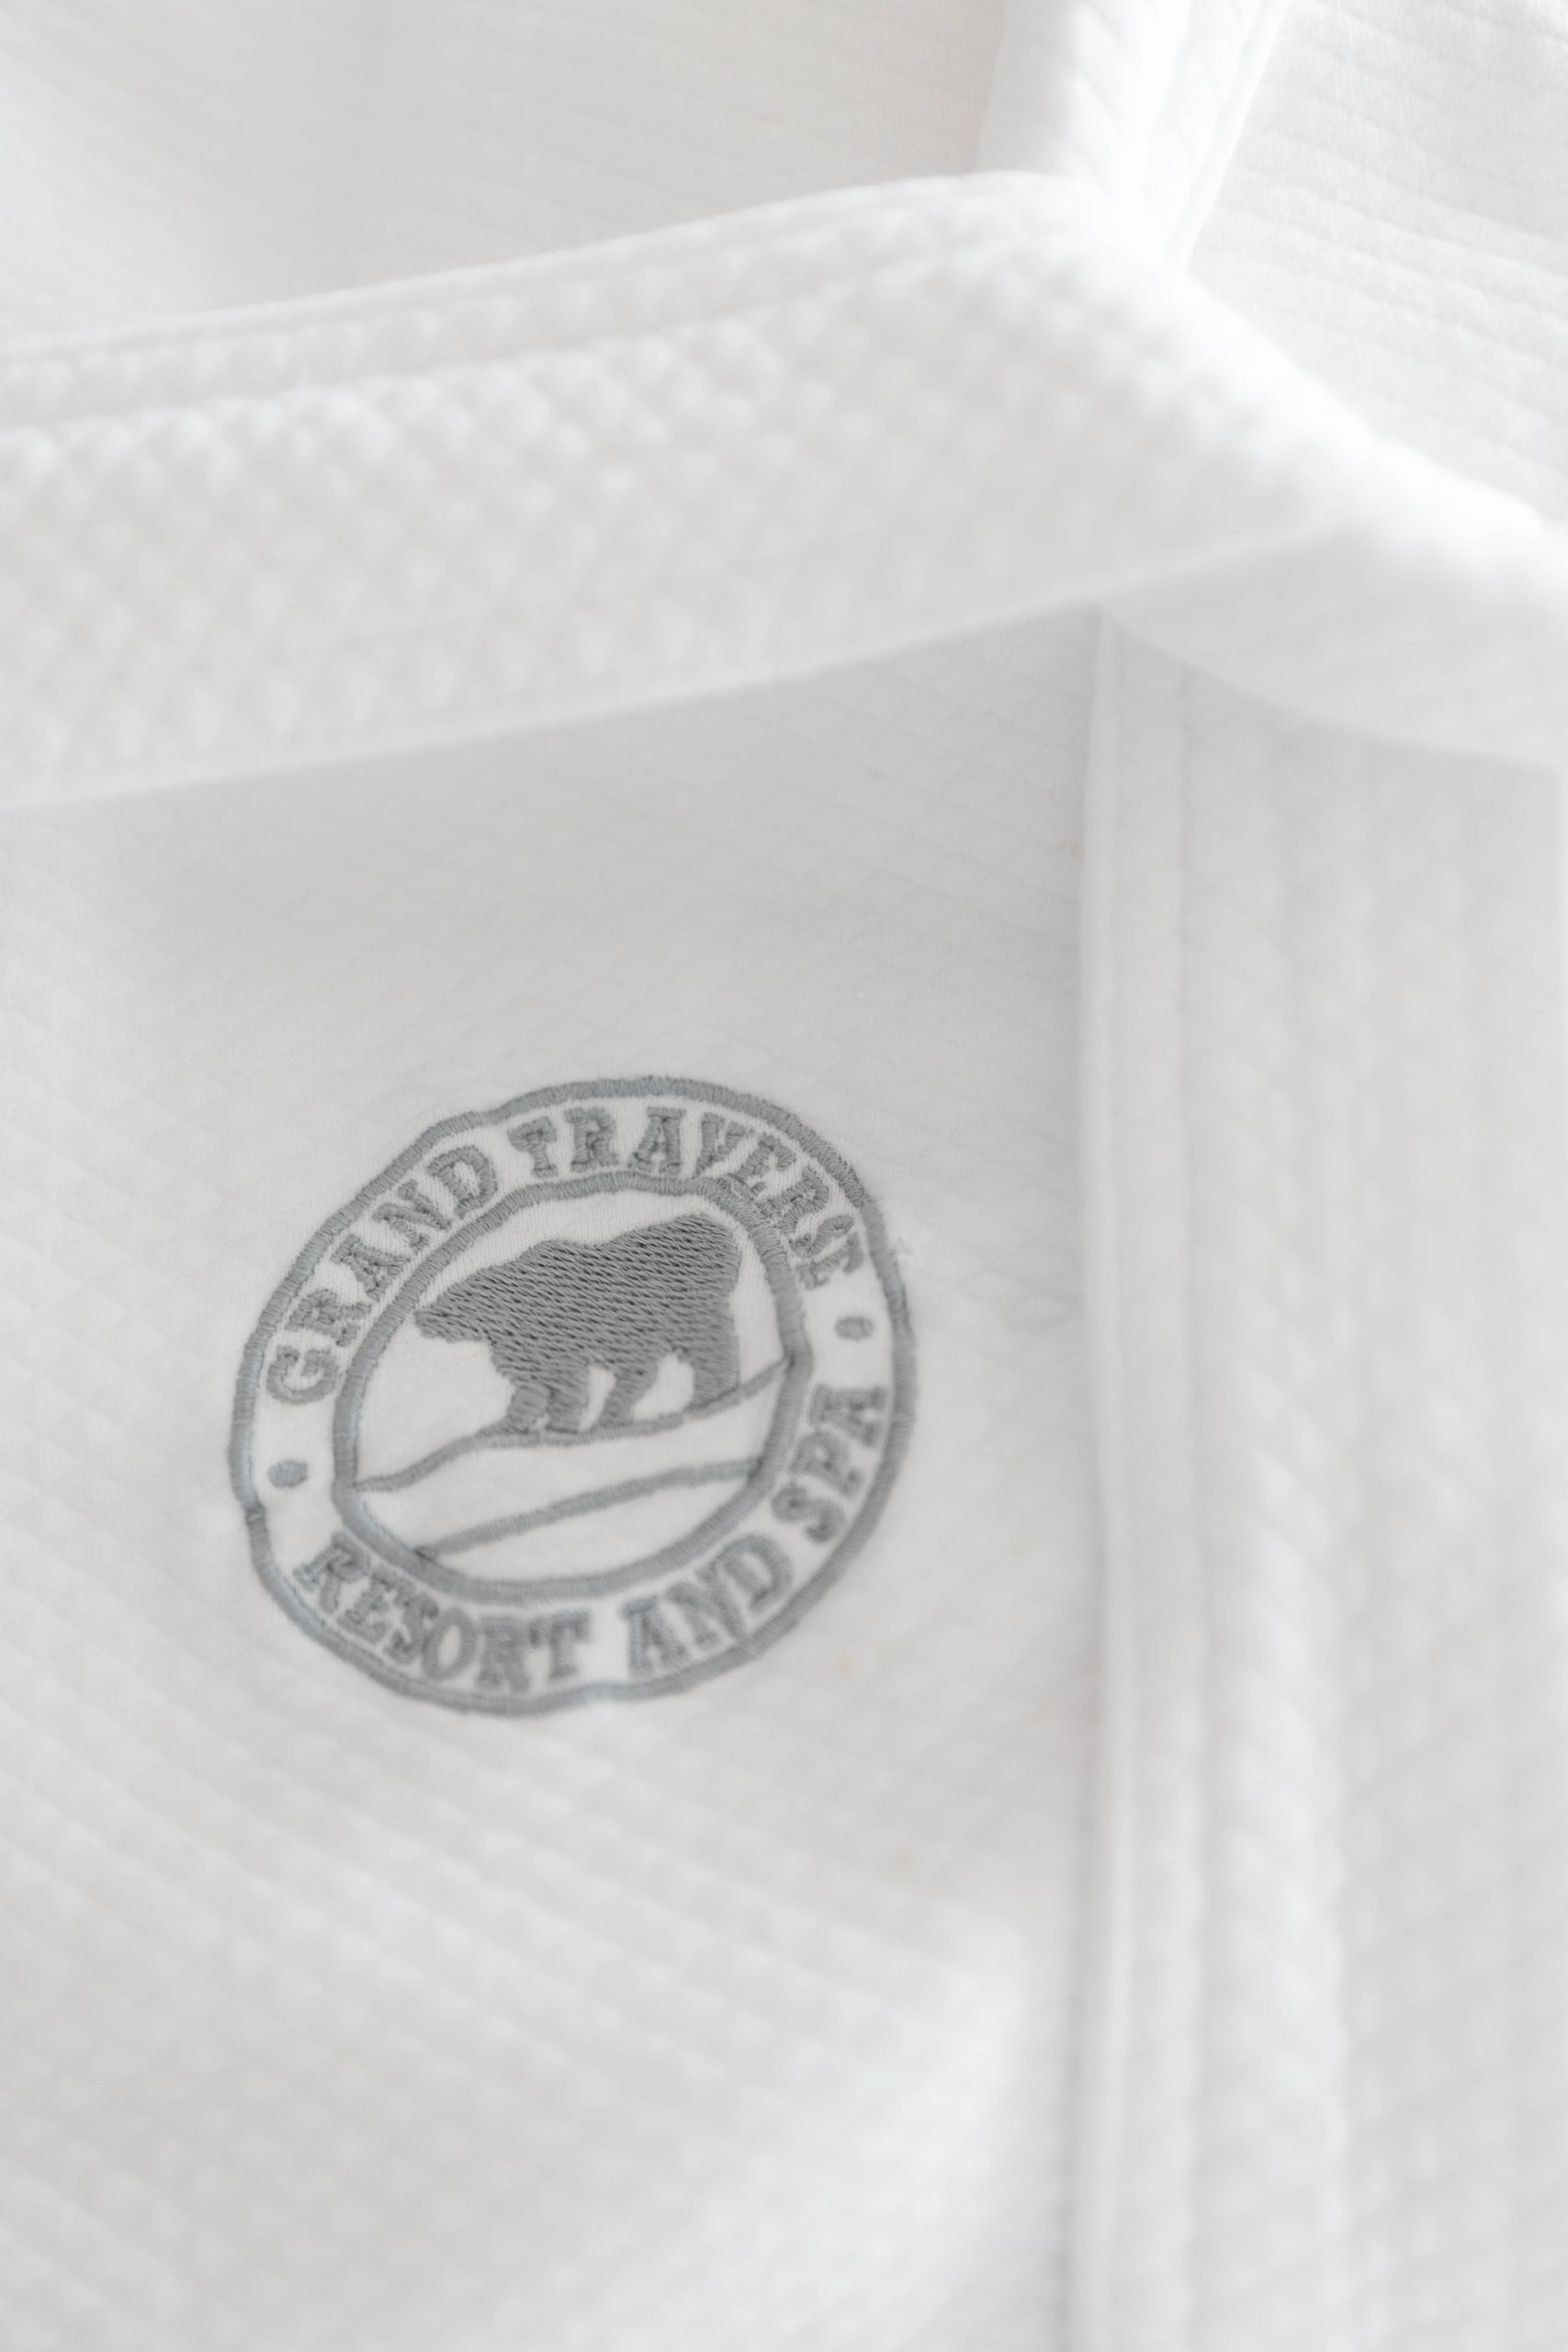 Embroidered Hotel Room Robe Grand Traverse Resort & Spa in Acme Traverse City Michigan Photographed by Annie Fairfax